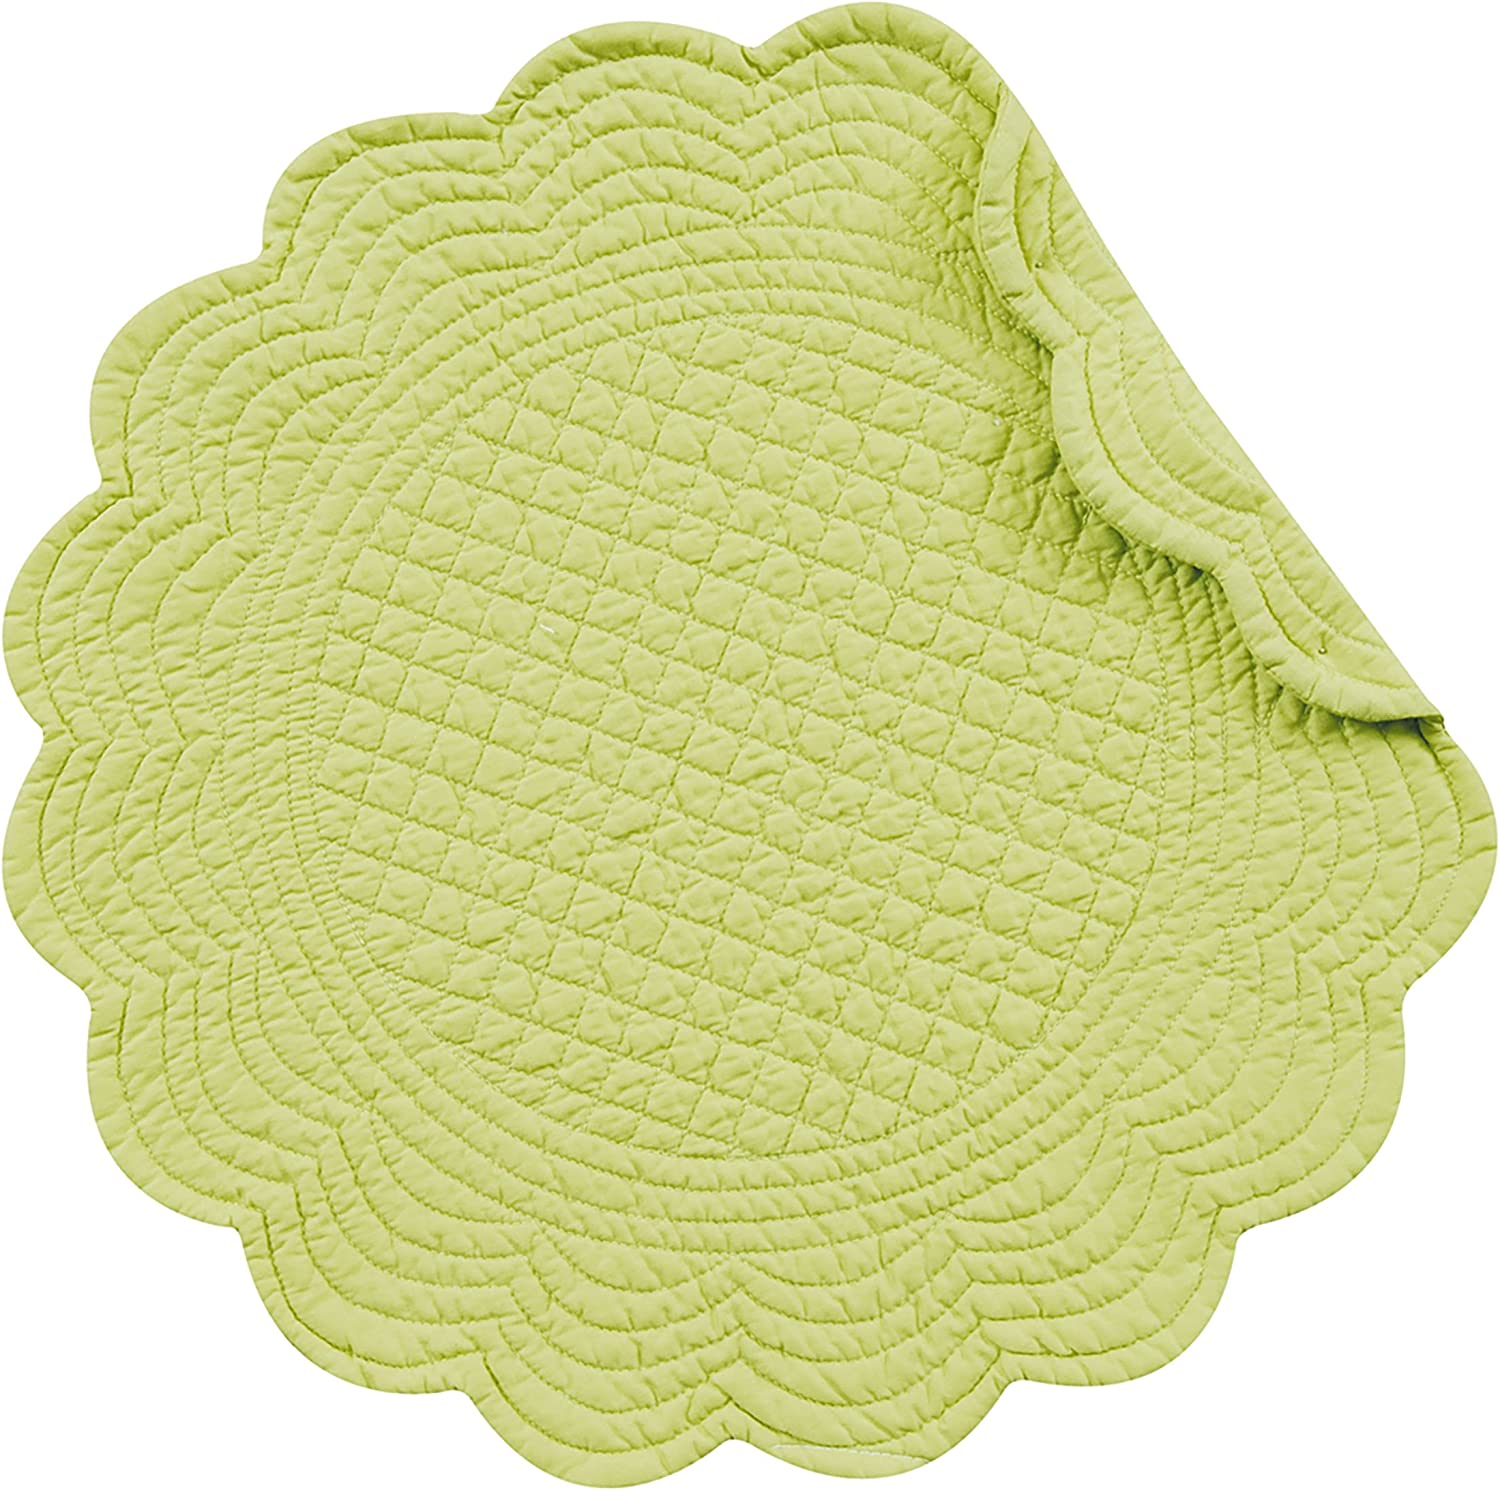 C&F Home Apple Green Round Cotton Quilted Placemat Set of 4 Round Placemat Apple Green